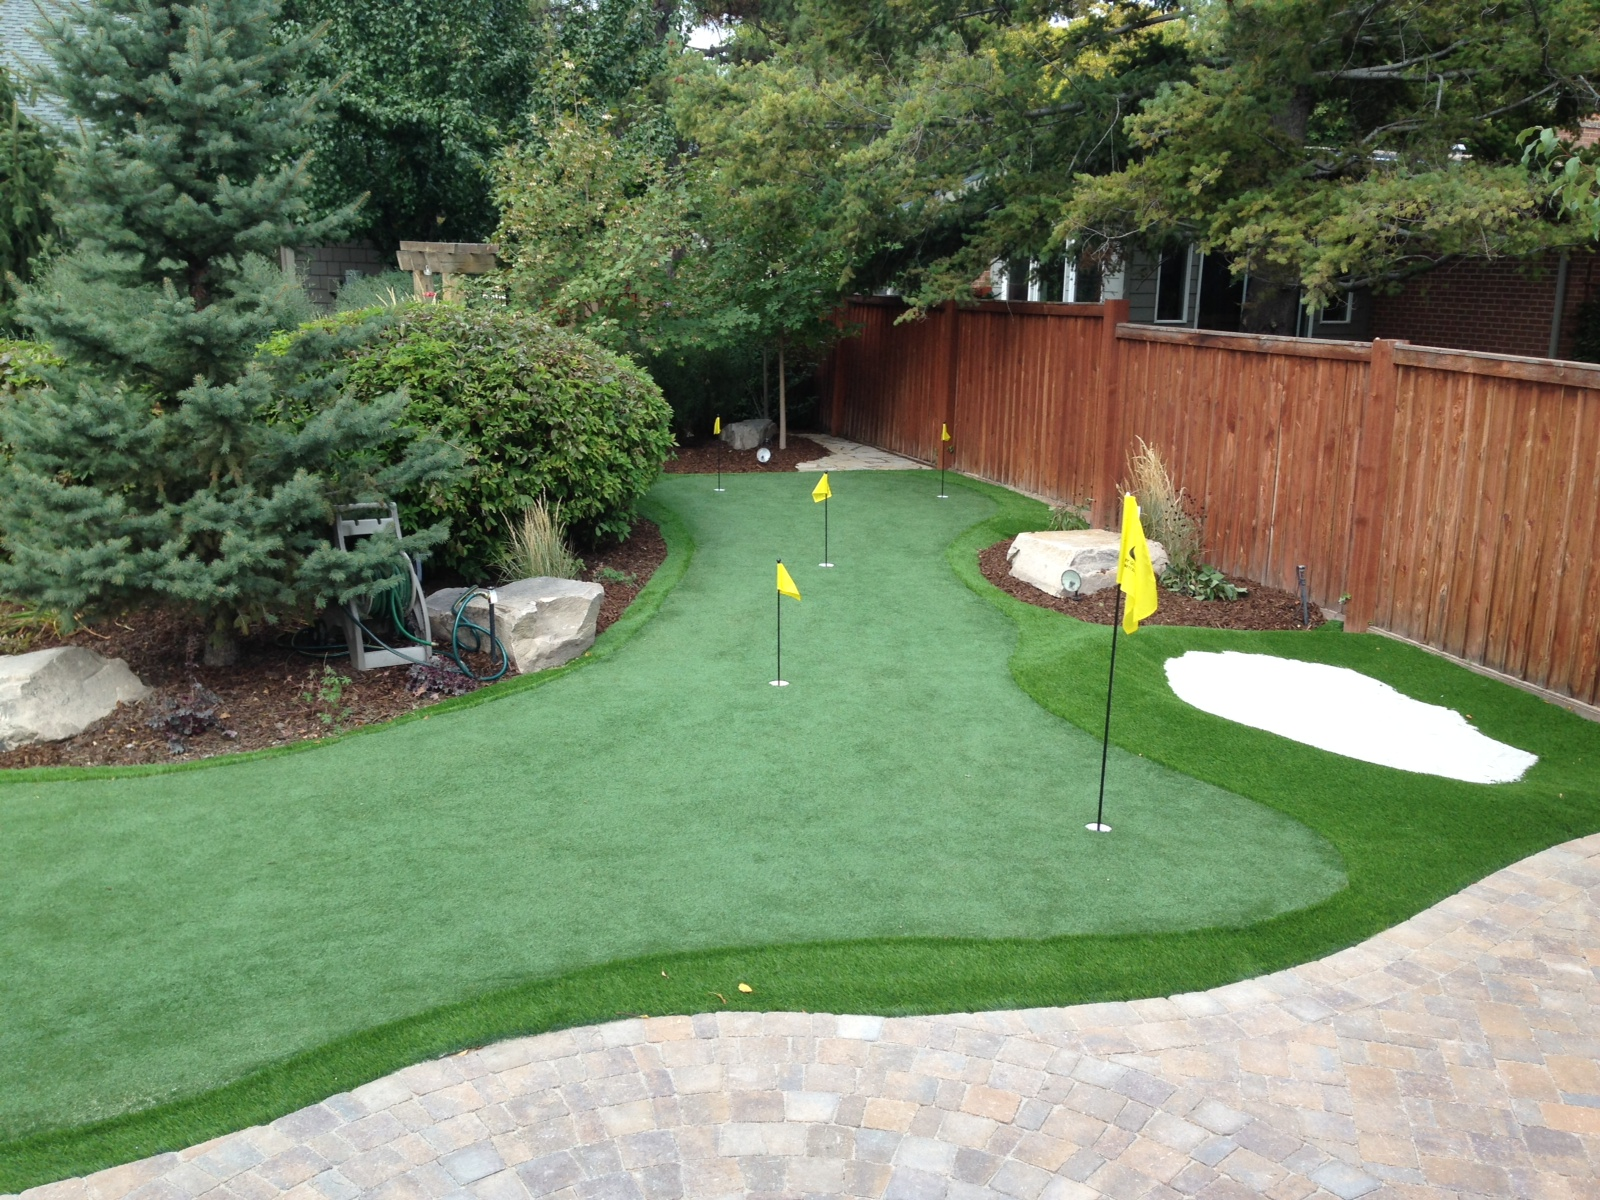 Backyard Putting Green Designs putting green brim design installation by long island ny company gappsi outdoors Backyard Putting Greens